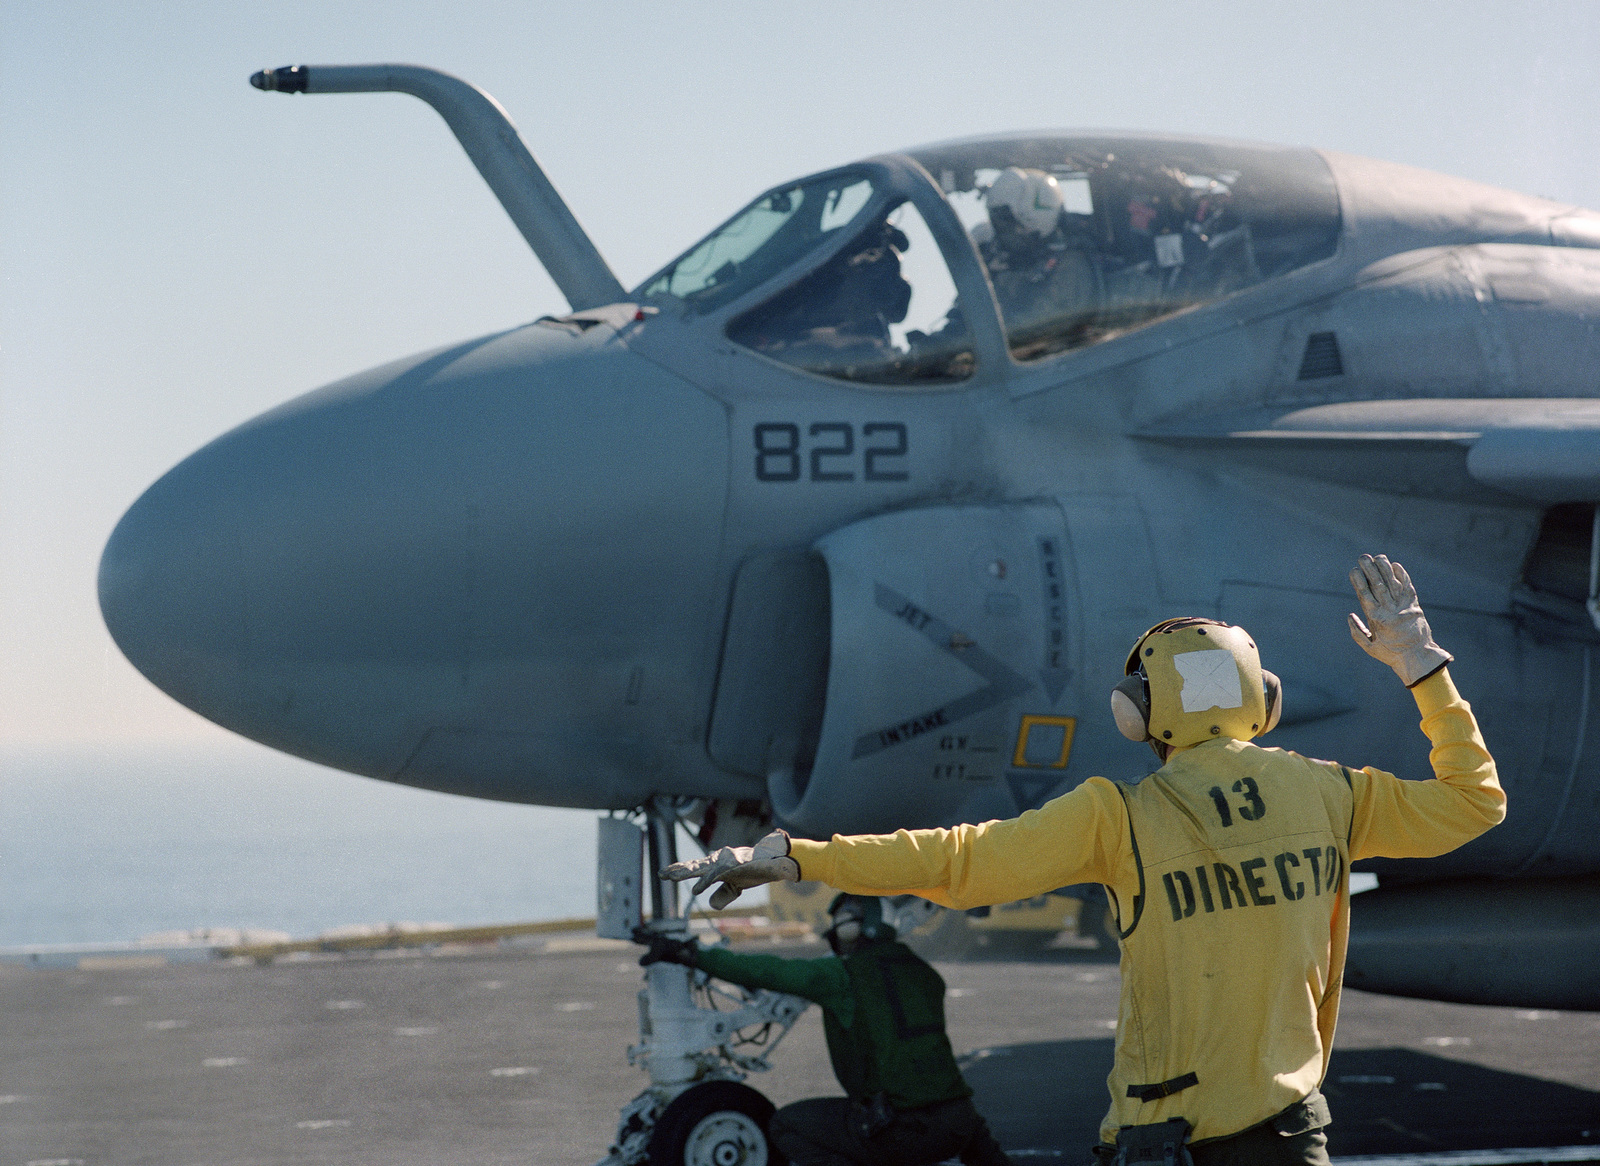 A plane director signals to an A-6E Intruder aircraft on a catapult during flight operations aboard the nuclear-powered aircraft carrier USS CARL VINSON (CVN-70)